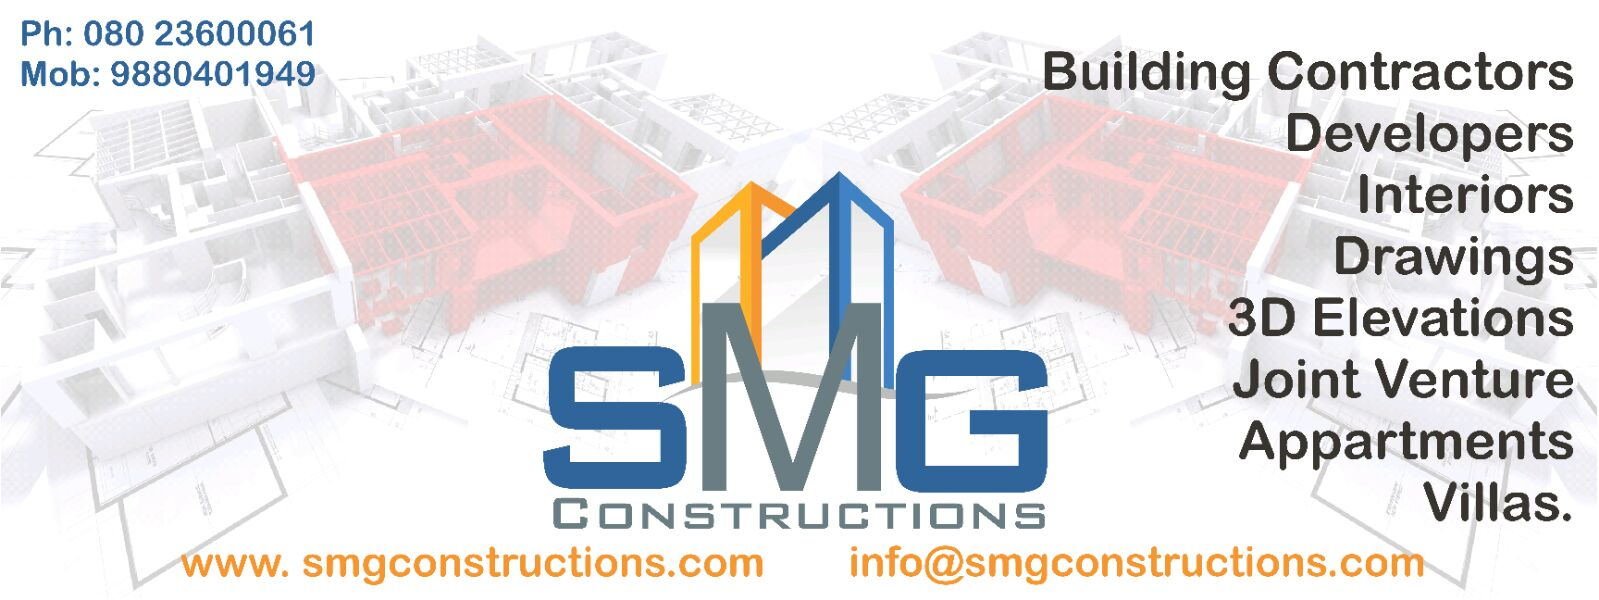 Smg Constructions